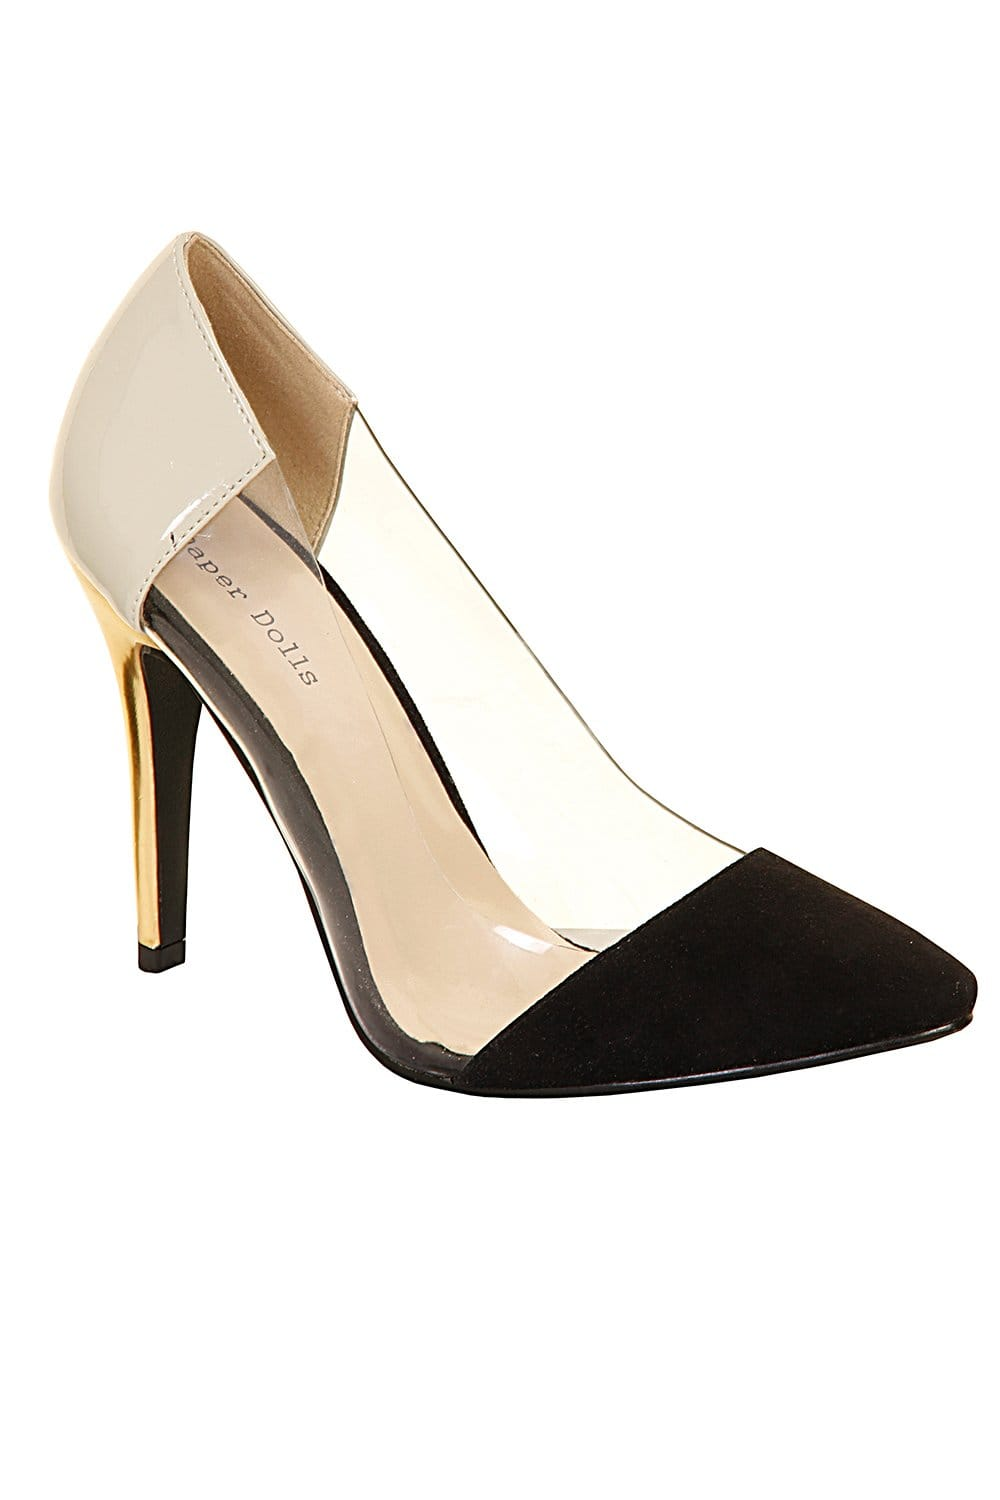 Outlet Paper Dolls Black &amp Cream Perspex Court Heel - Outlet Paper